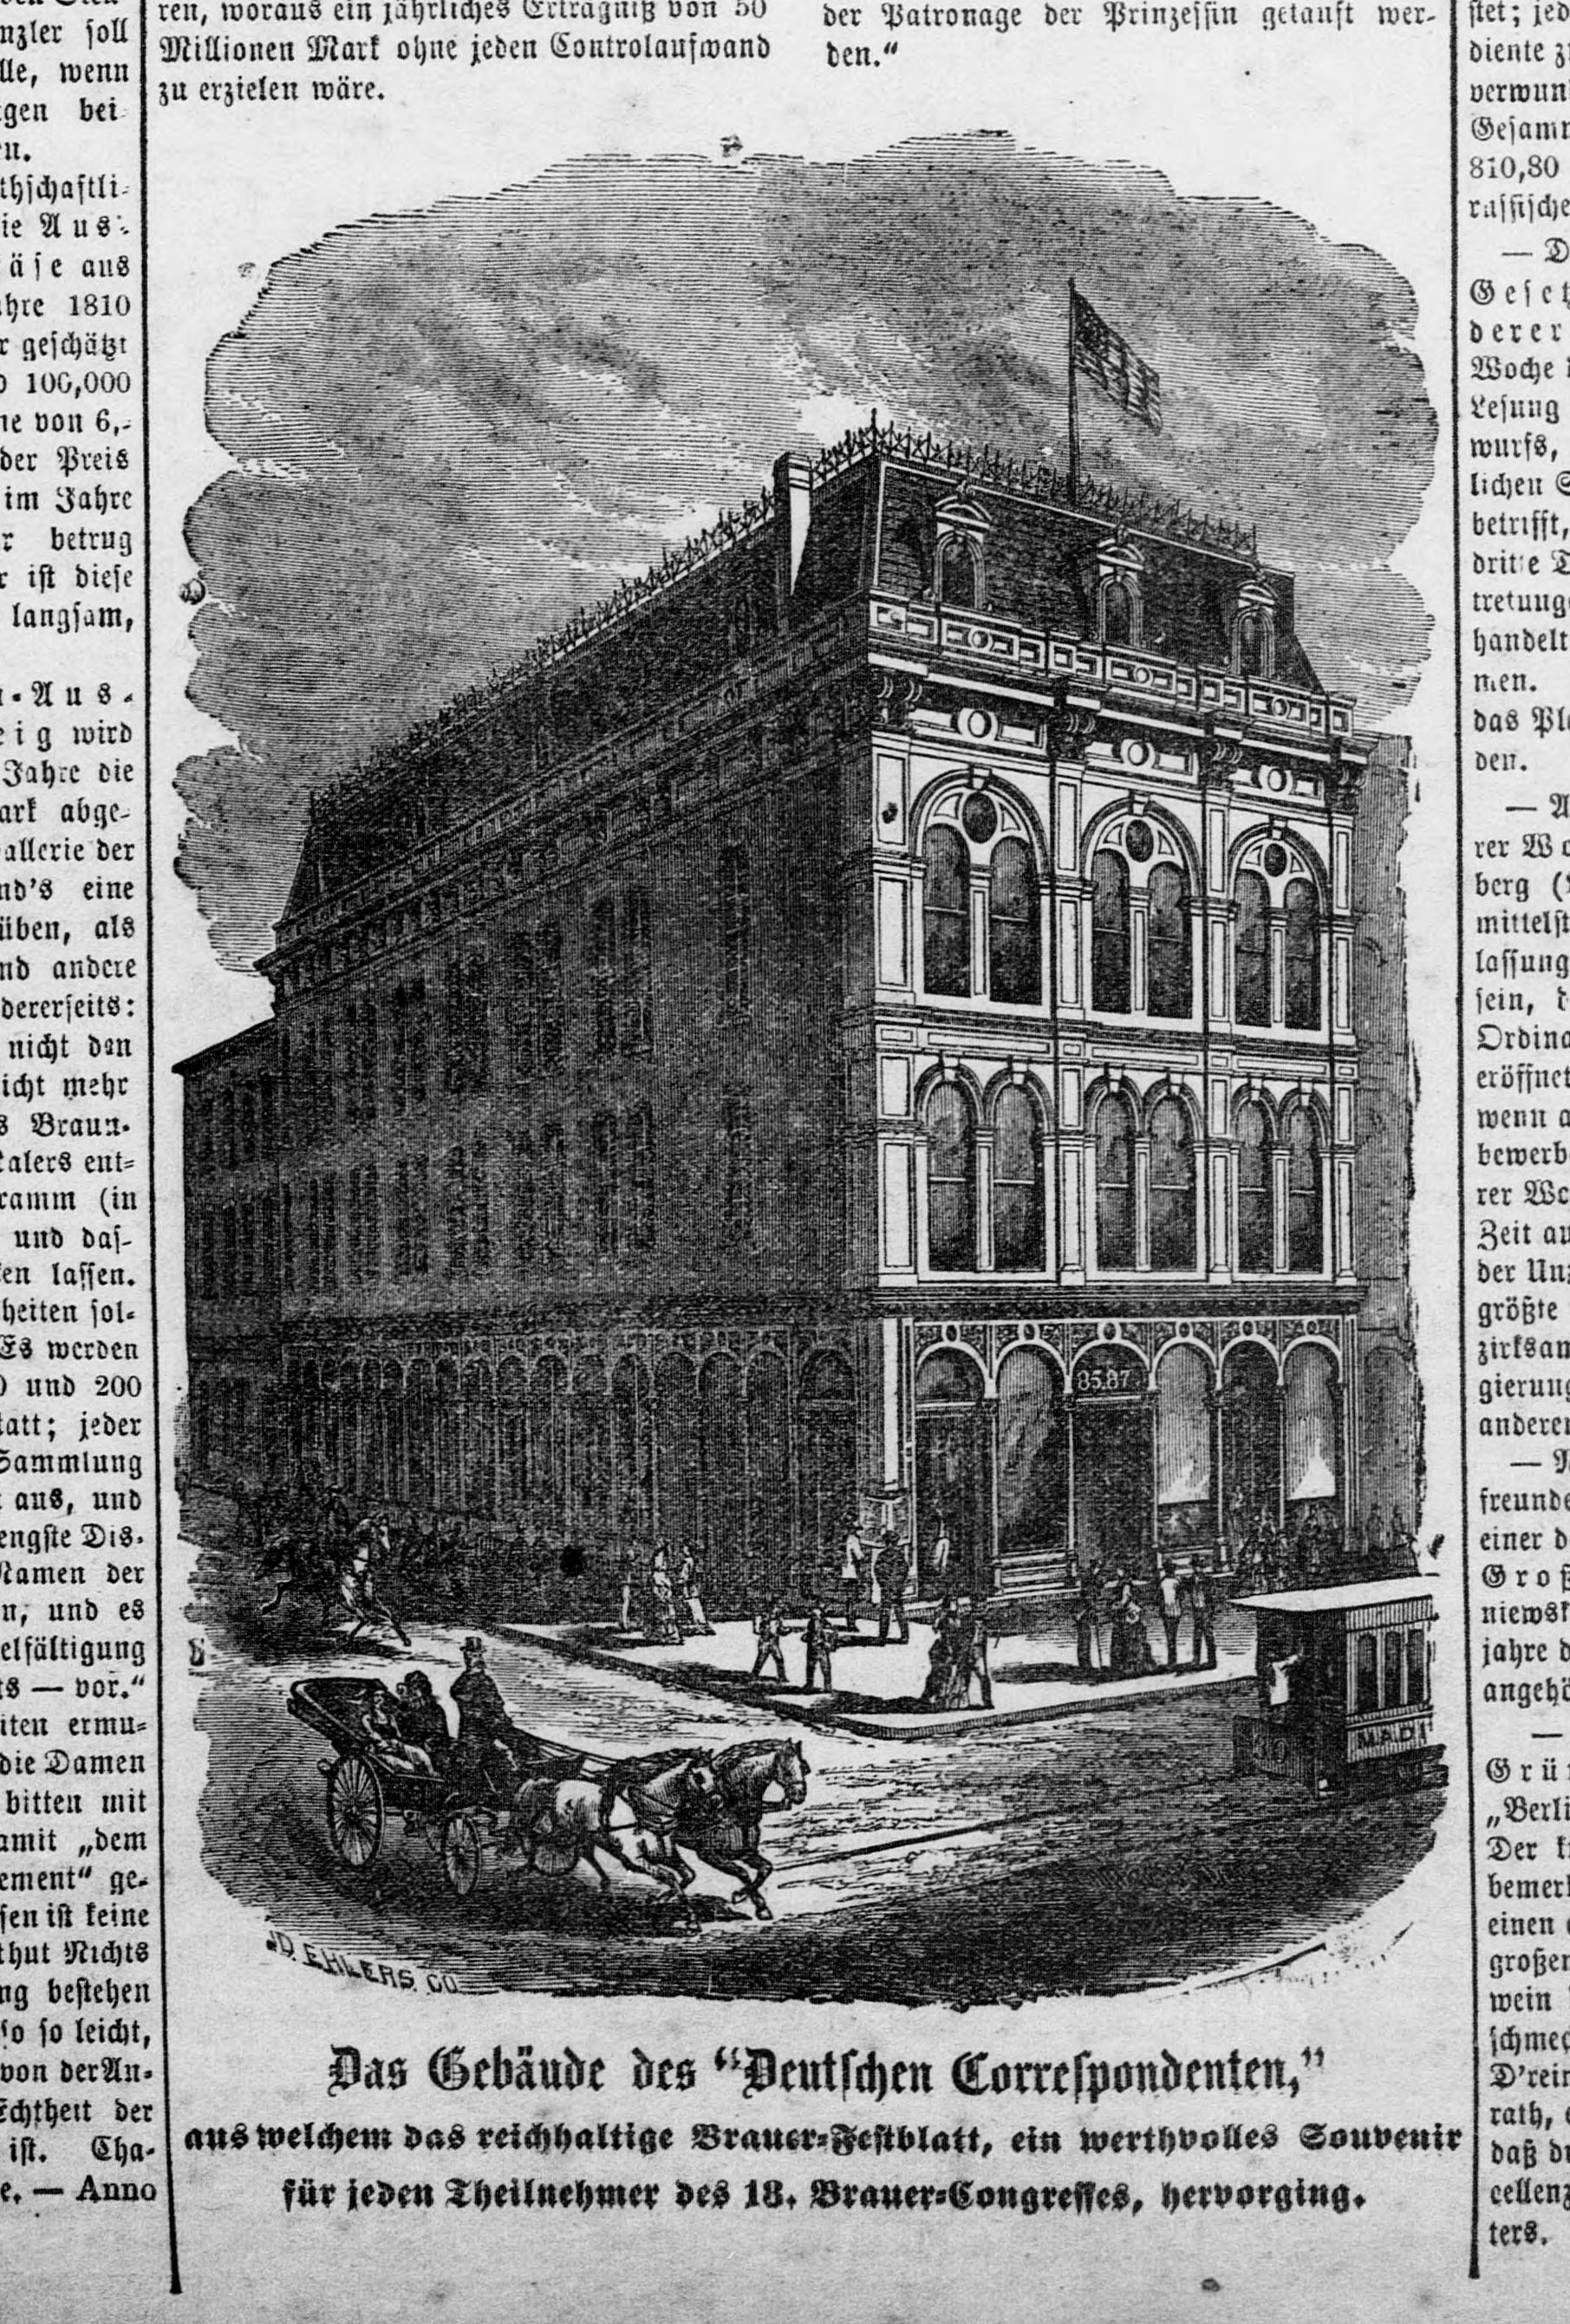 Image of the offices of Der Deutsche Correspondent in Baltimore, MD from the June 5, 1878 issue of the newspaper.